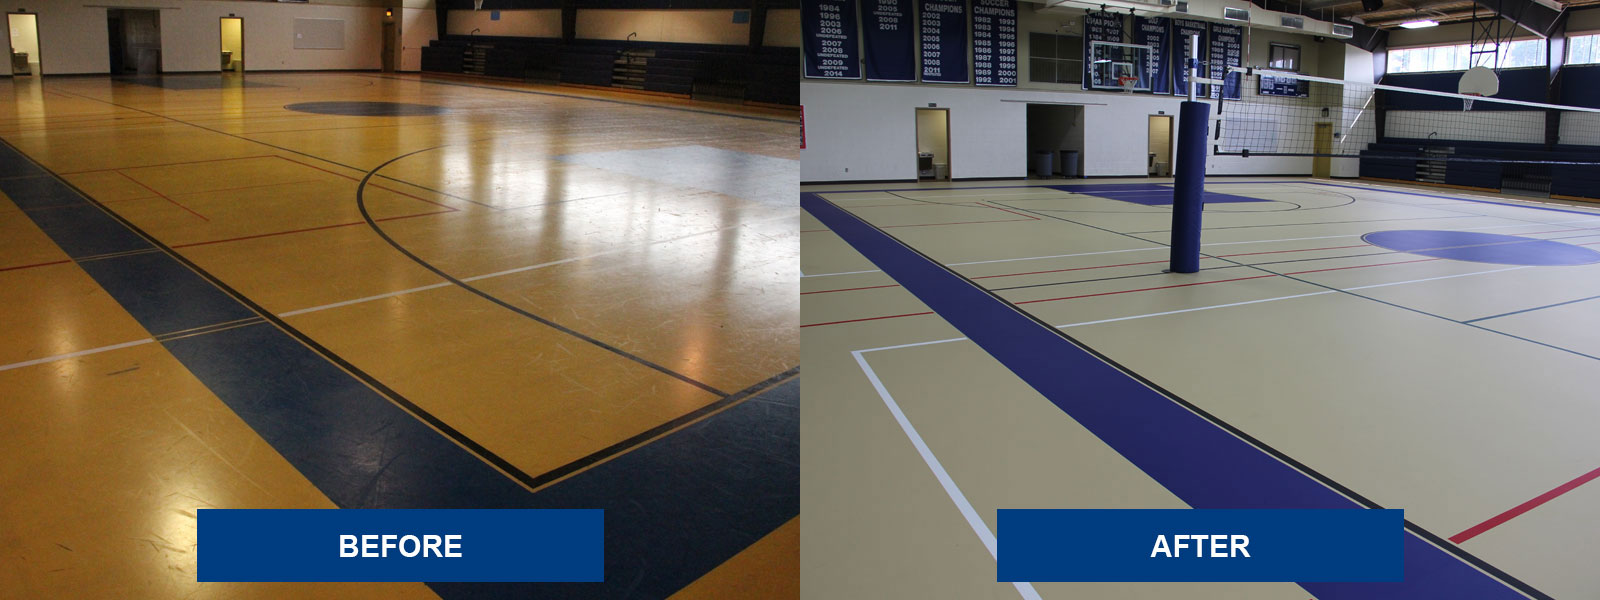 All Saints Episcopal School Before & After